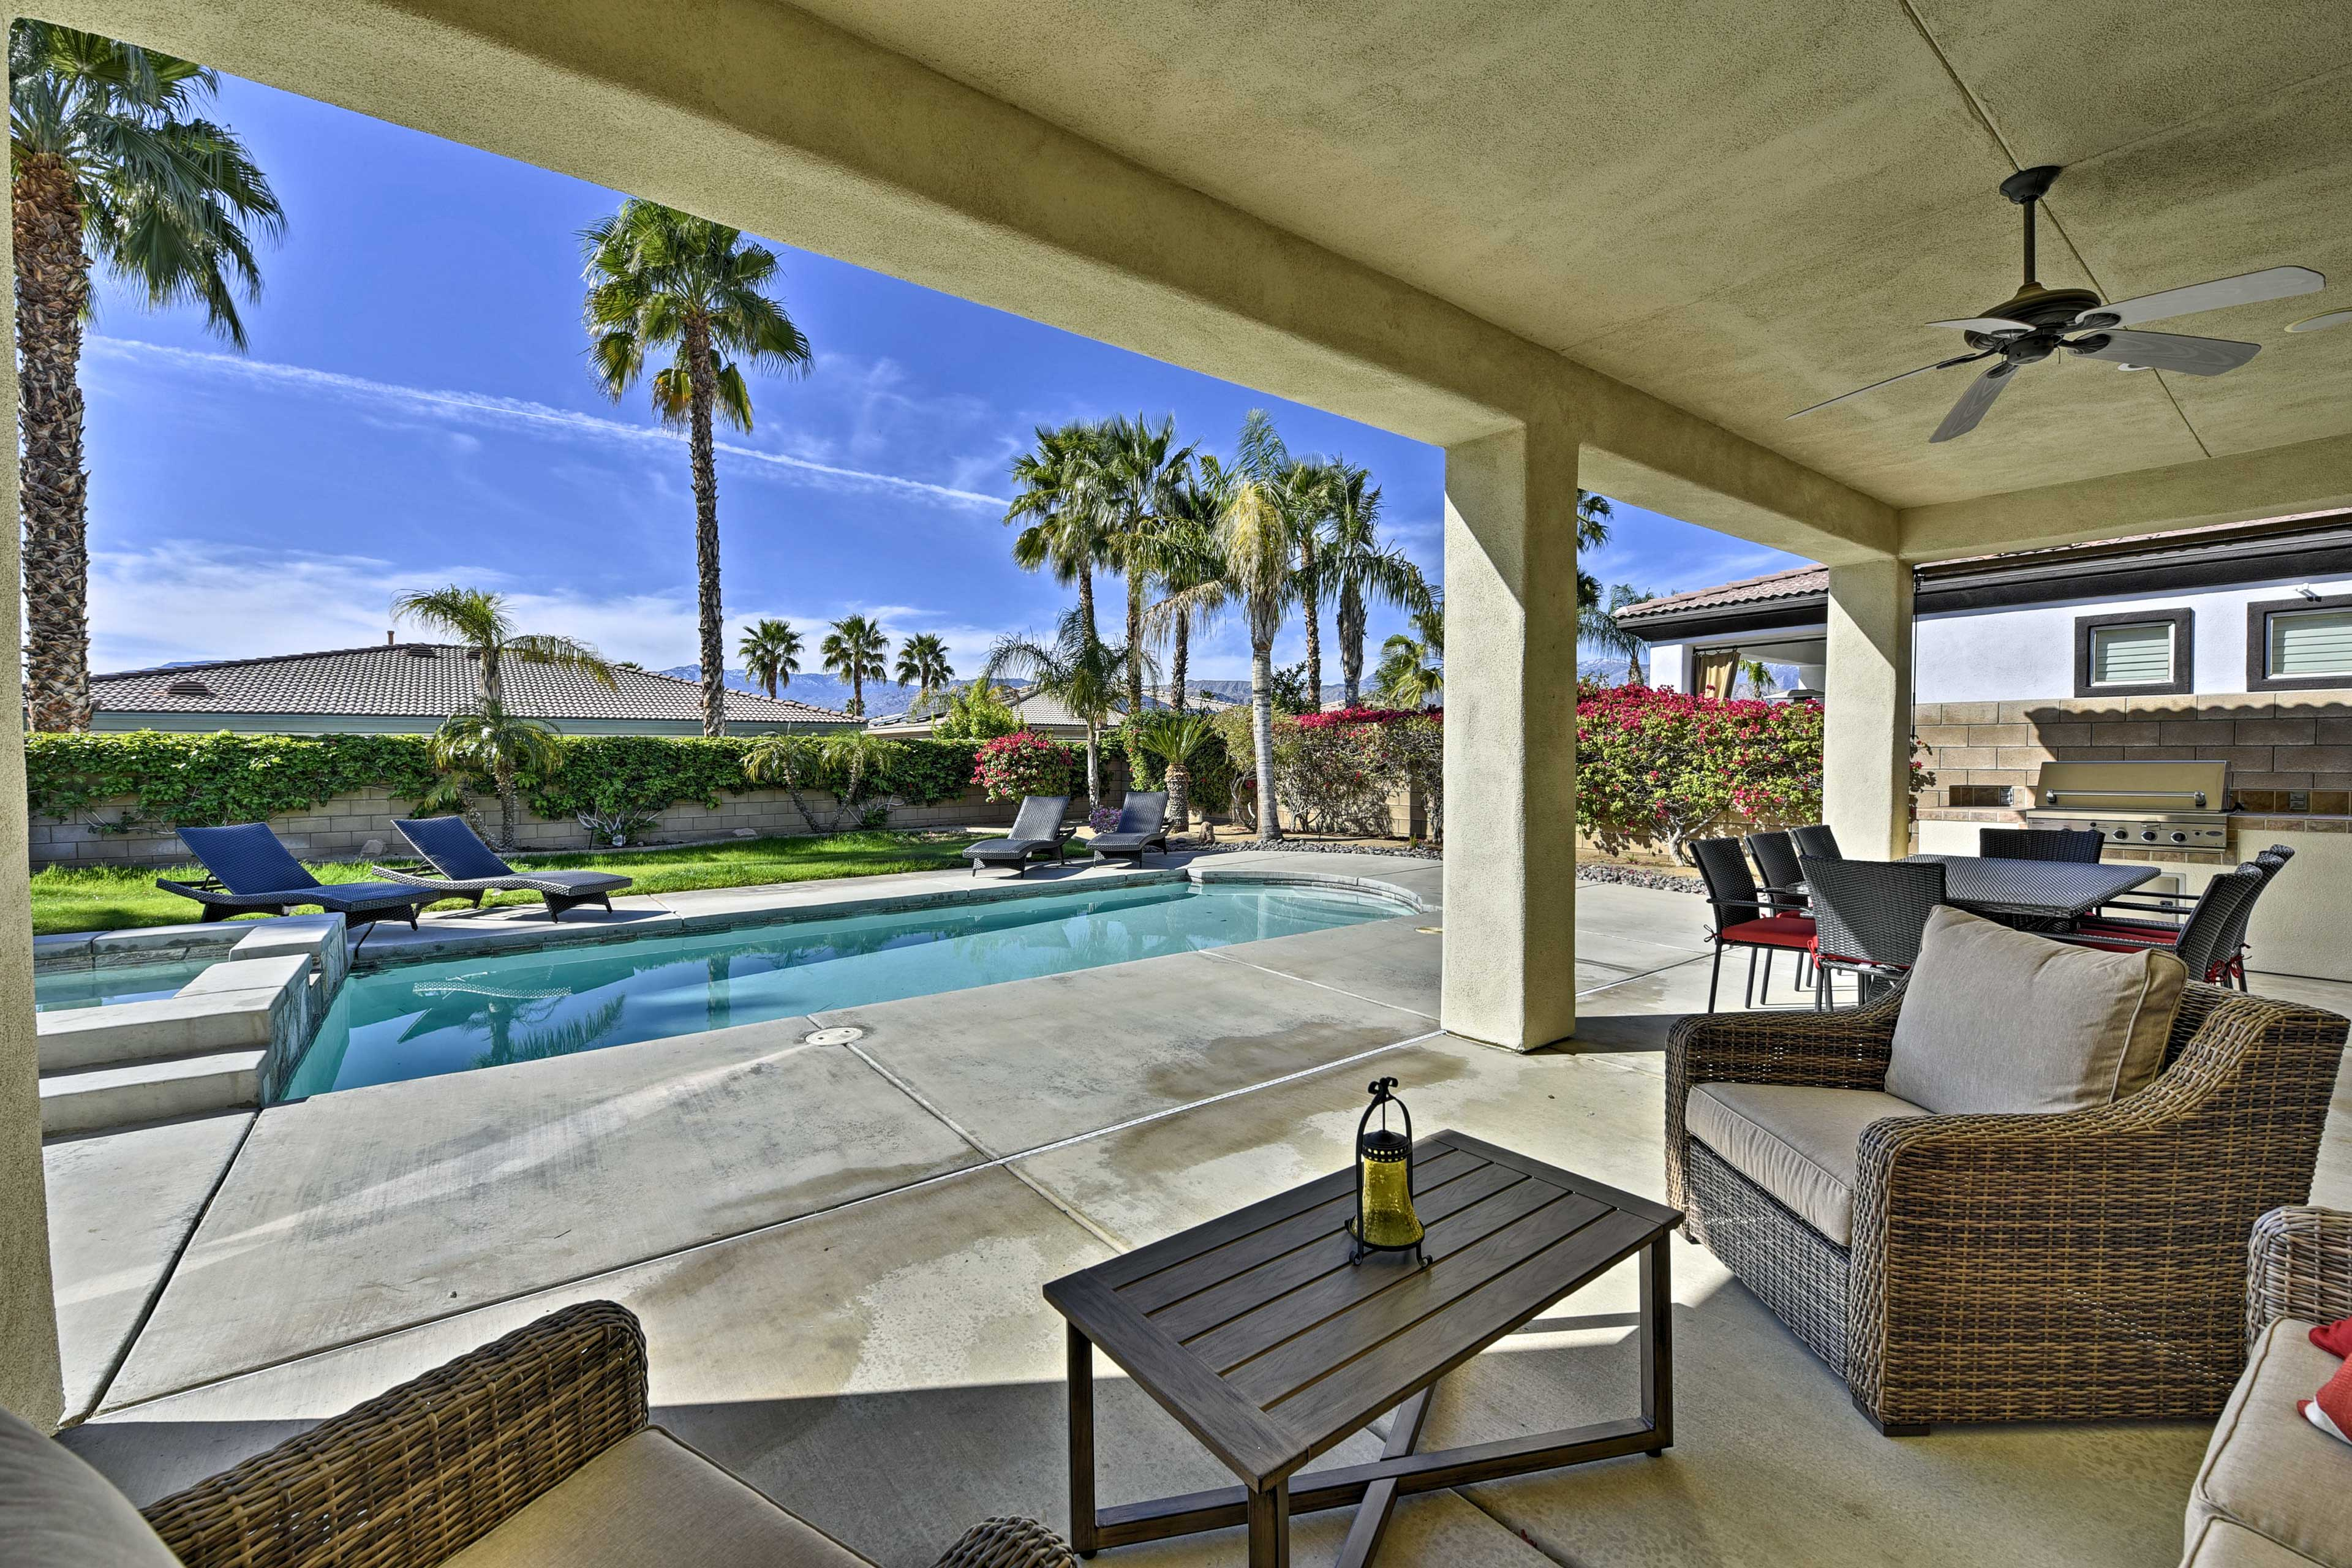 Retreat to the desert for some relaxation in this luxurious vacation rental!